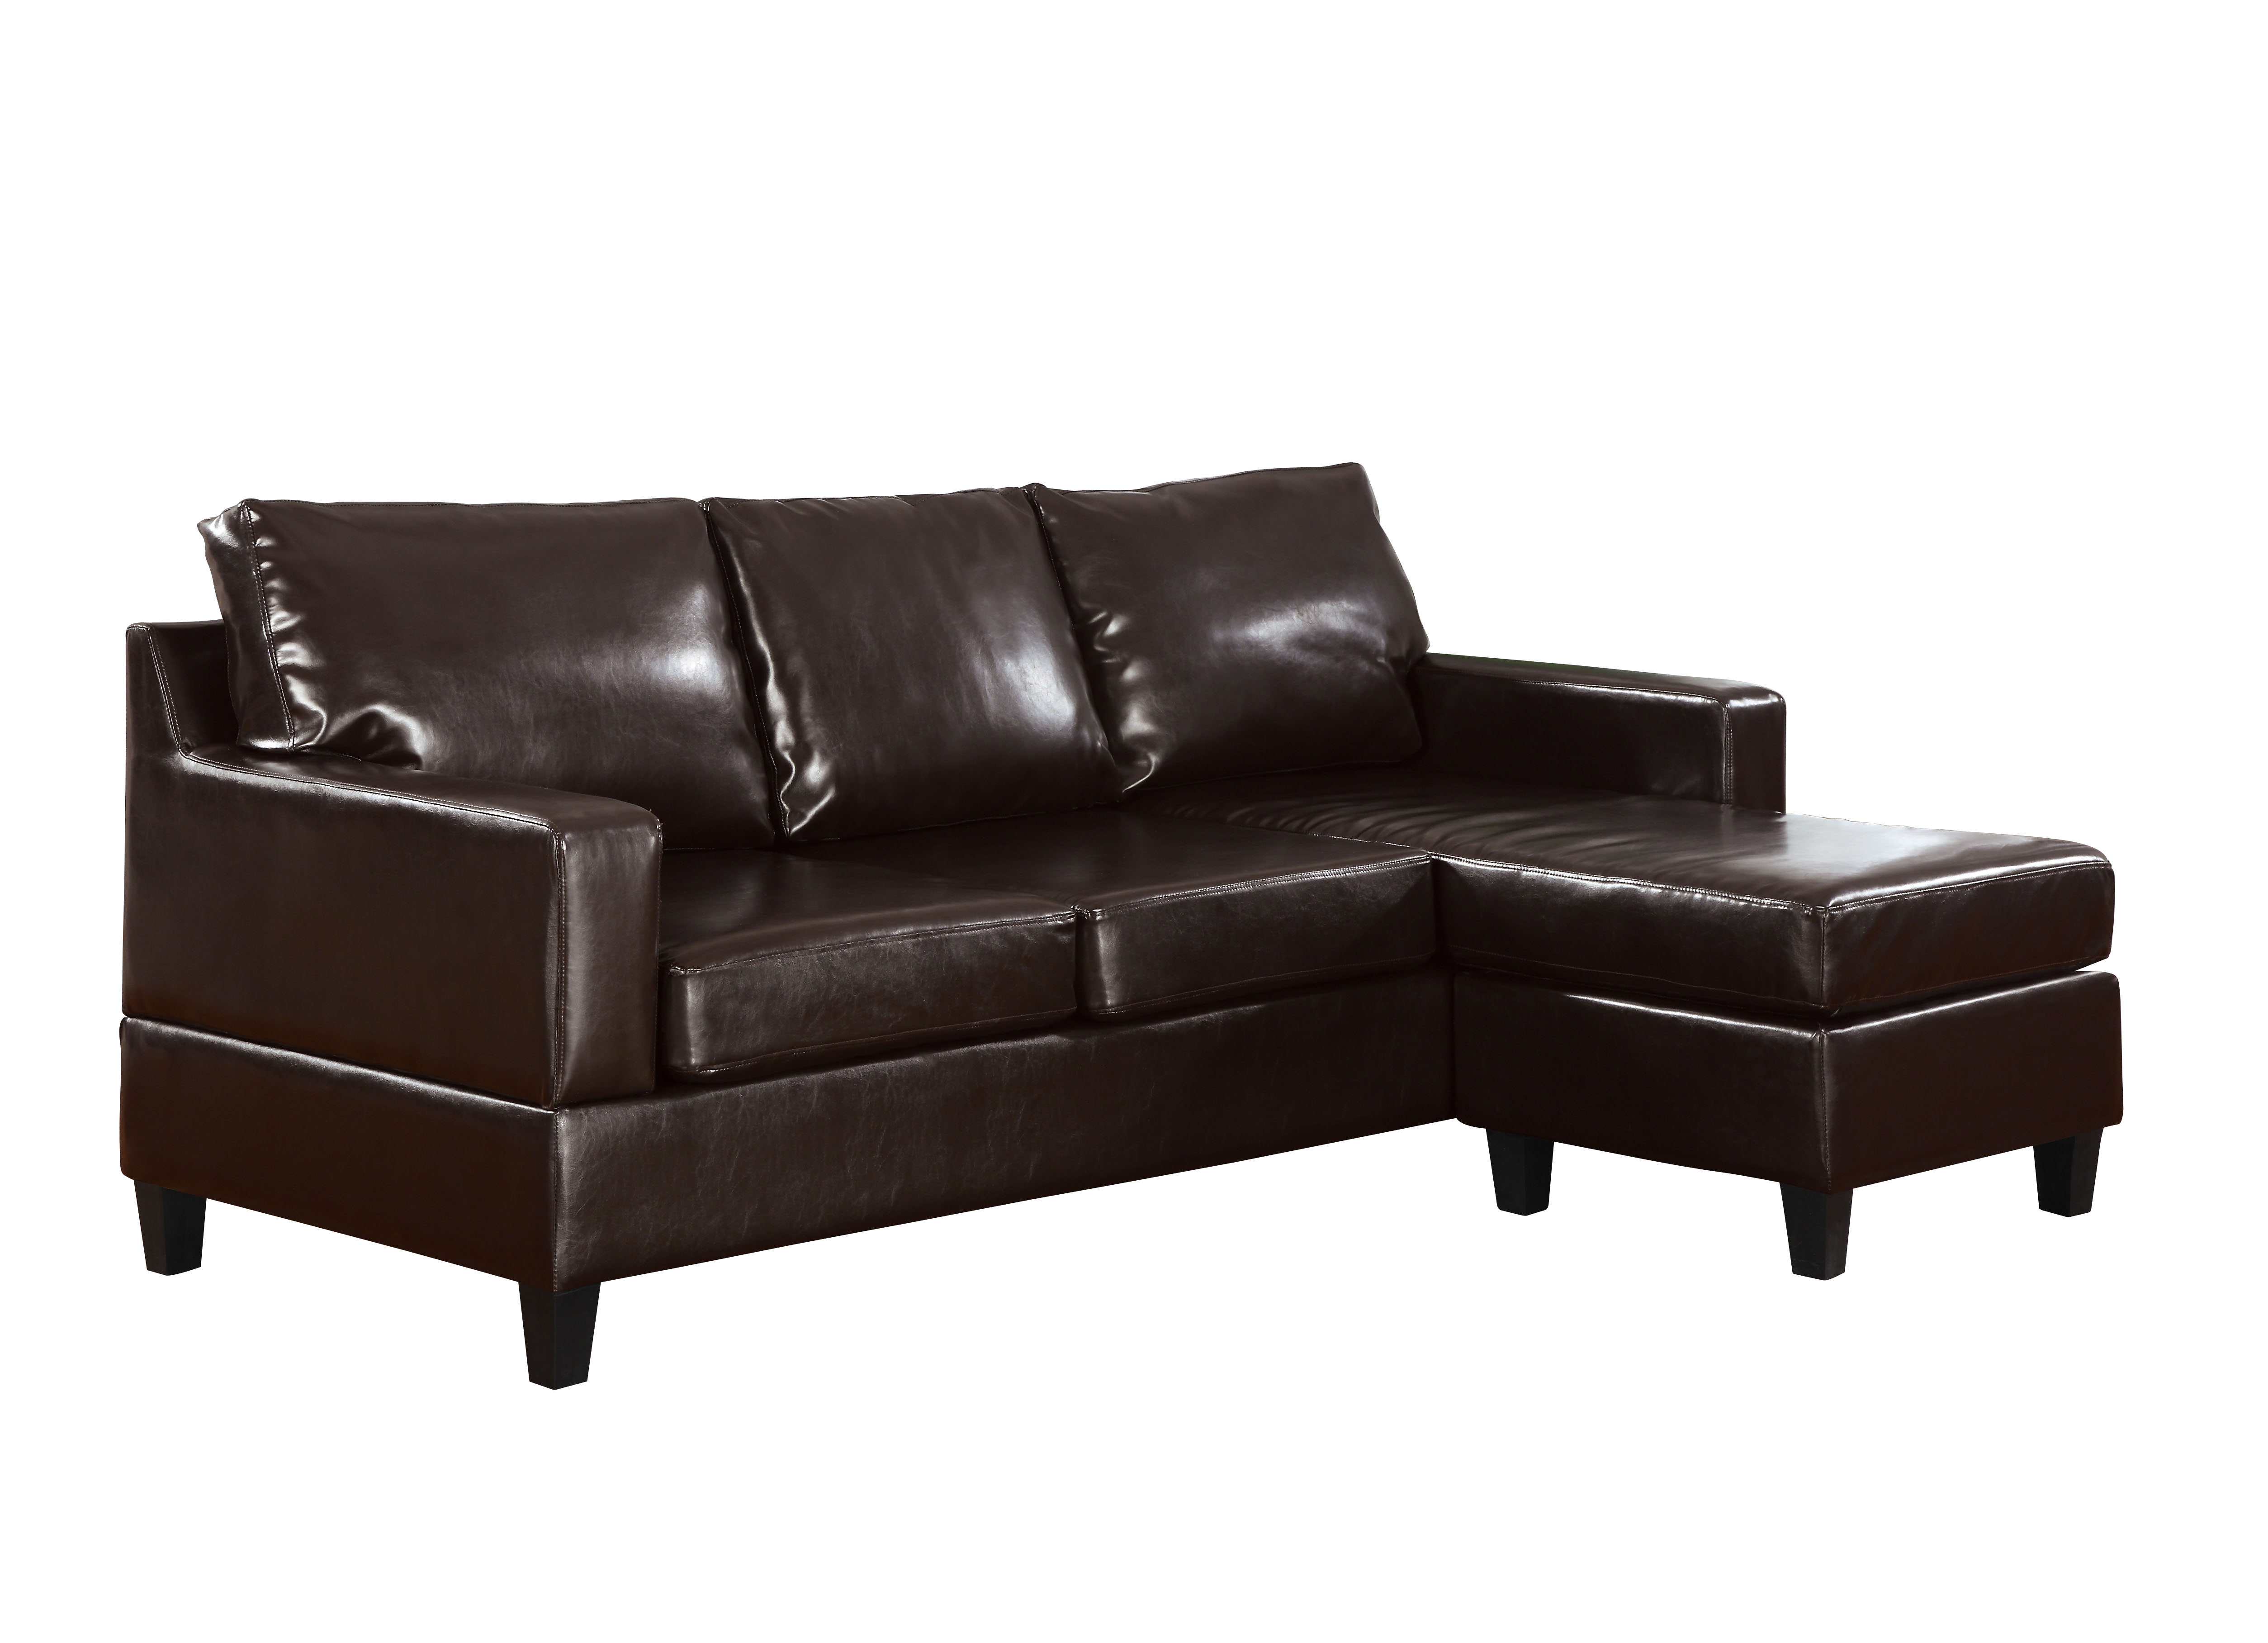 ACME Vogue II Reversible Sectional Sofa in Espresso Bonded Leather by Acme Furniture